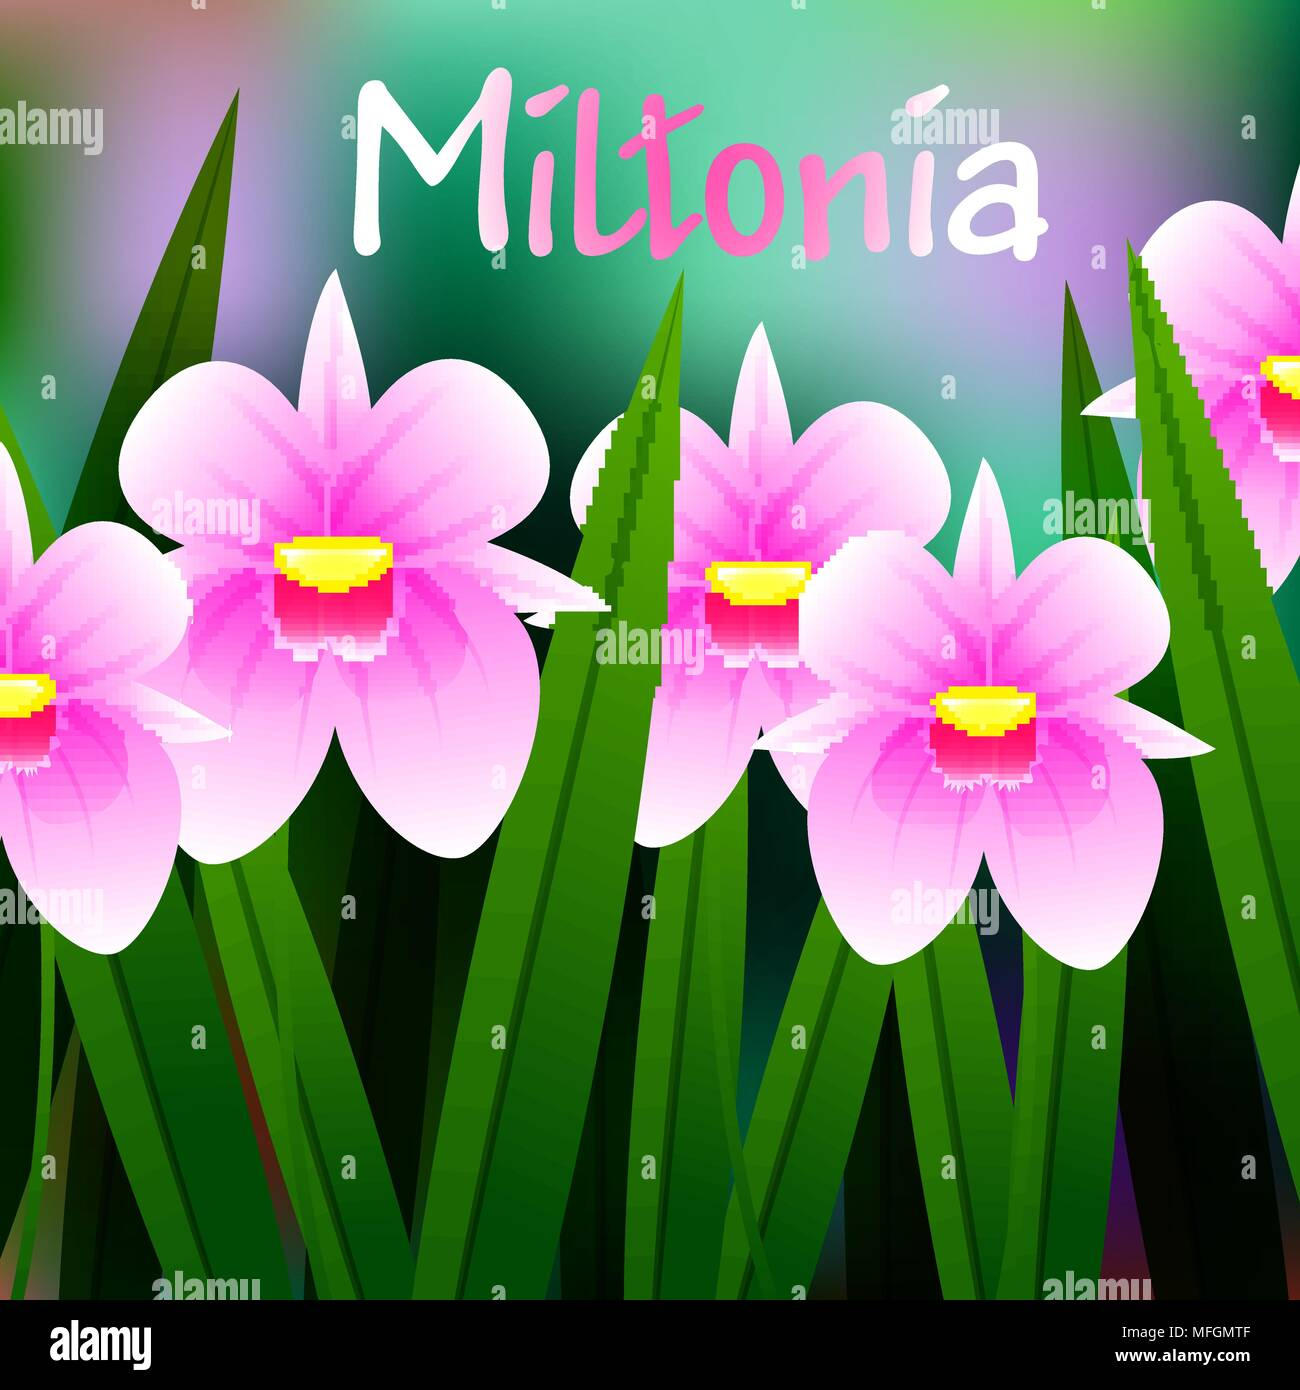 Beautiful Flower, Illustration of Orchid Miltonia with Green Leaves. Vector illustration - Stock Vector